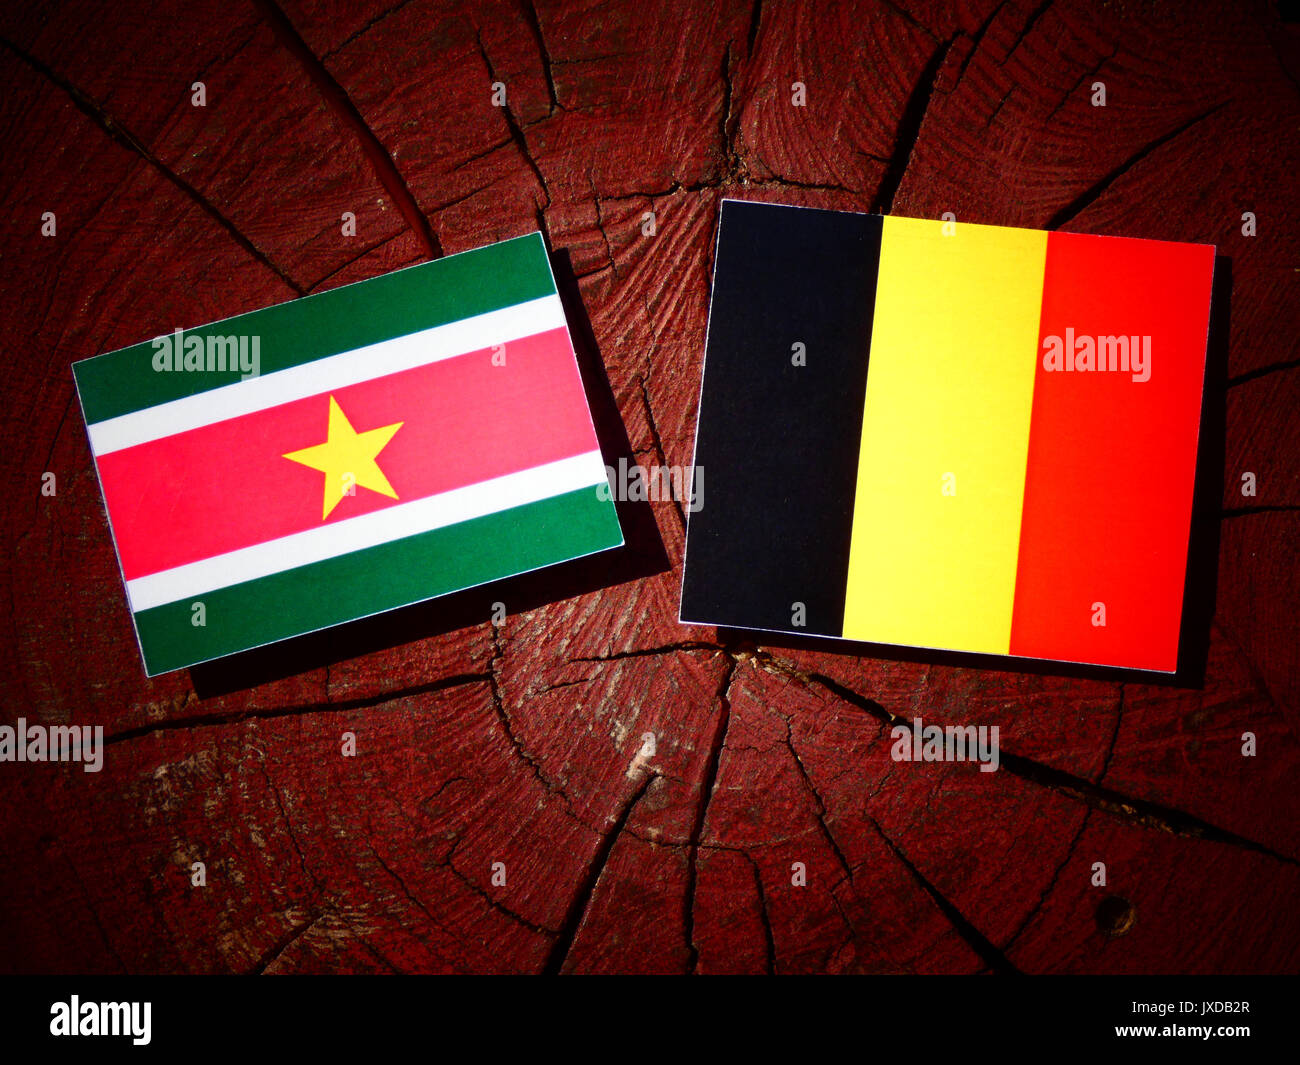 Suriname flag with Belgian flag on a tree stump isolated - Stock Image